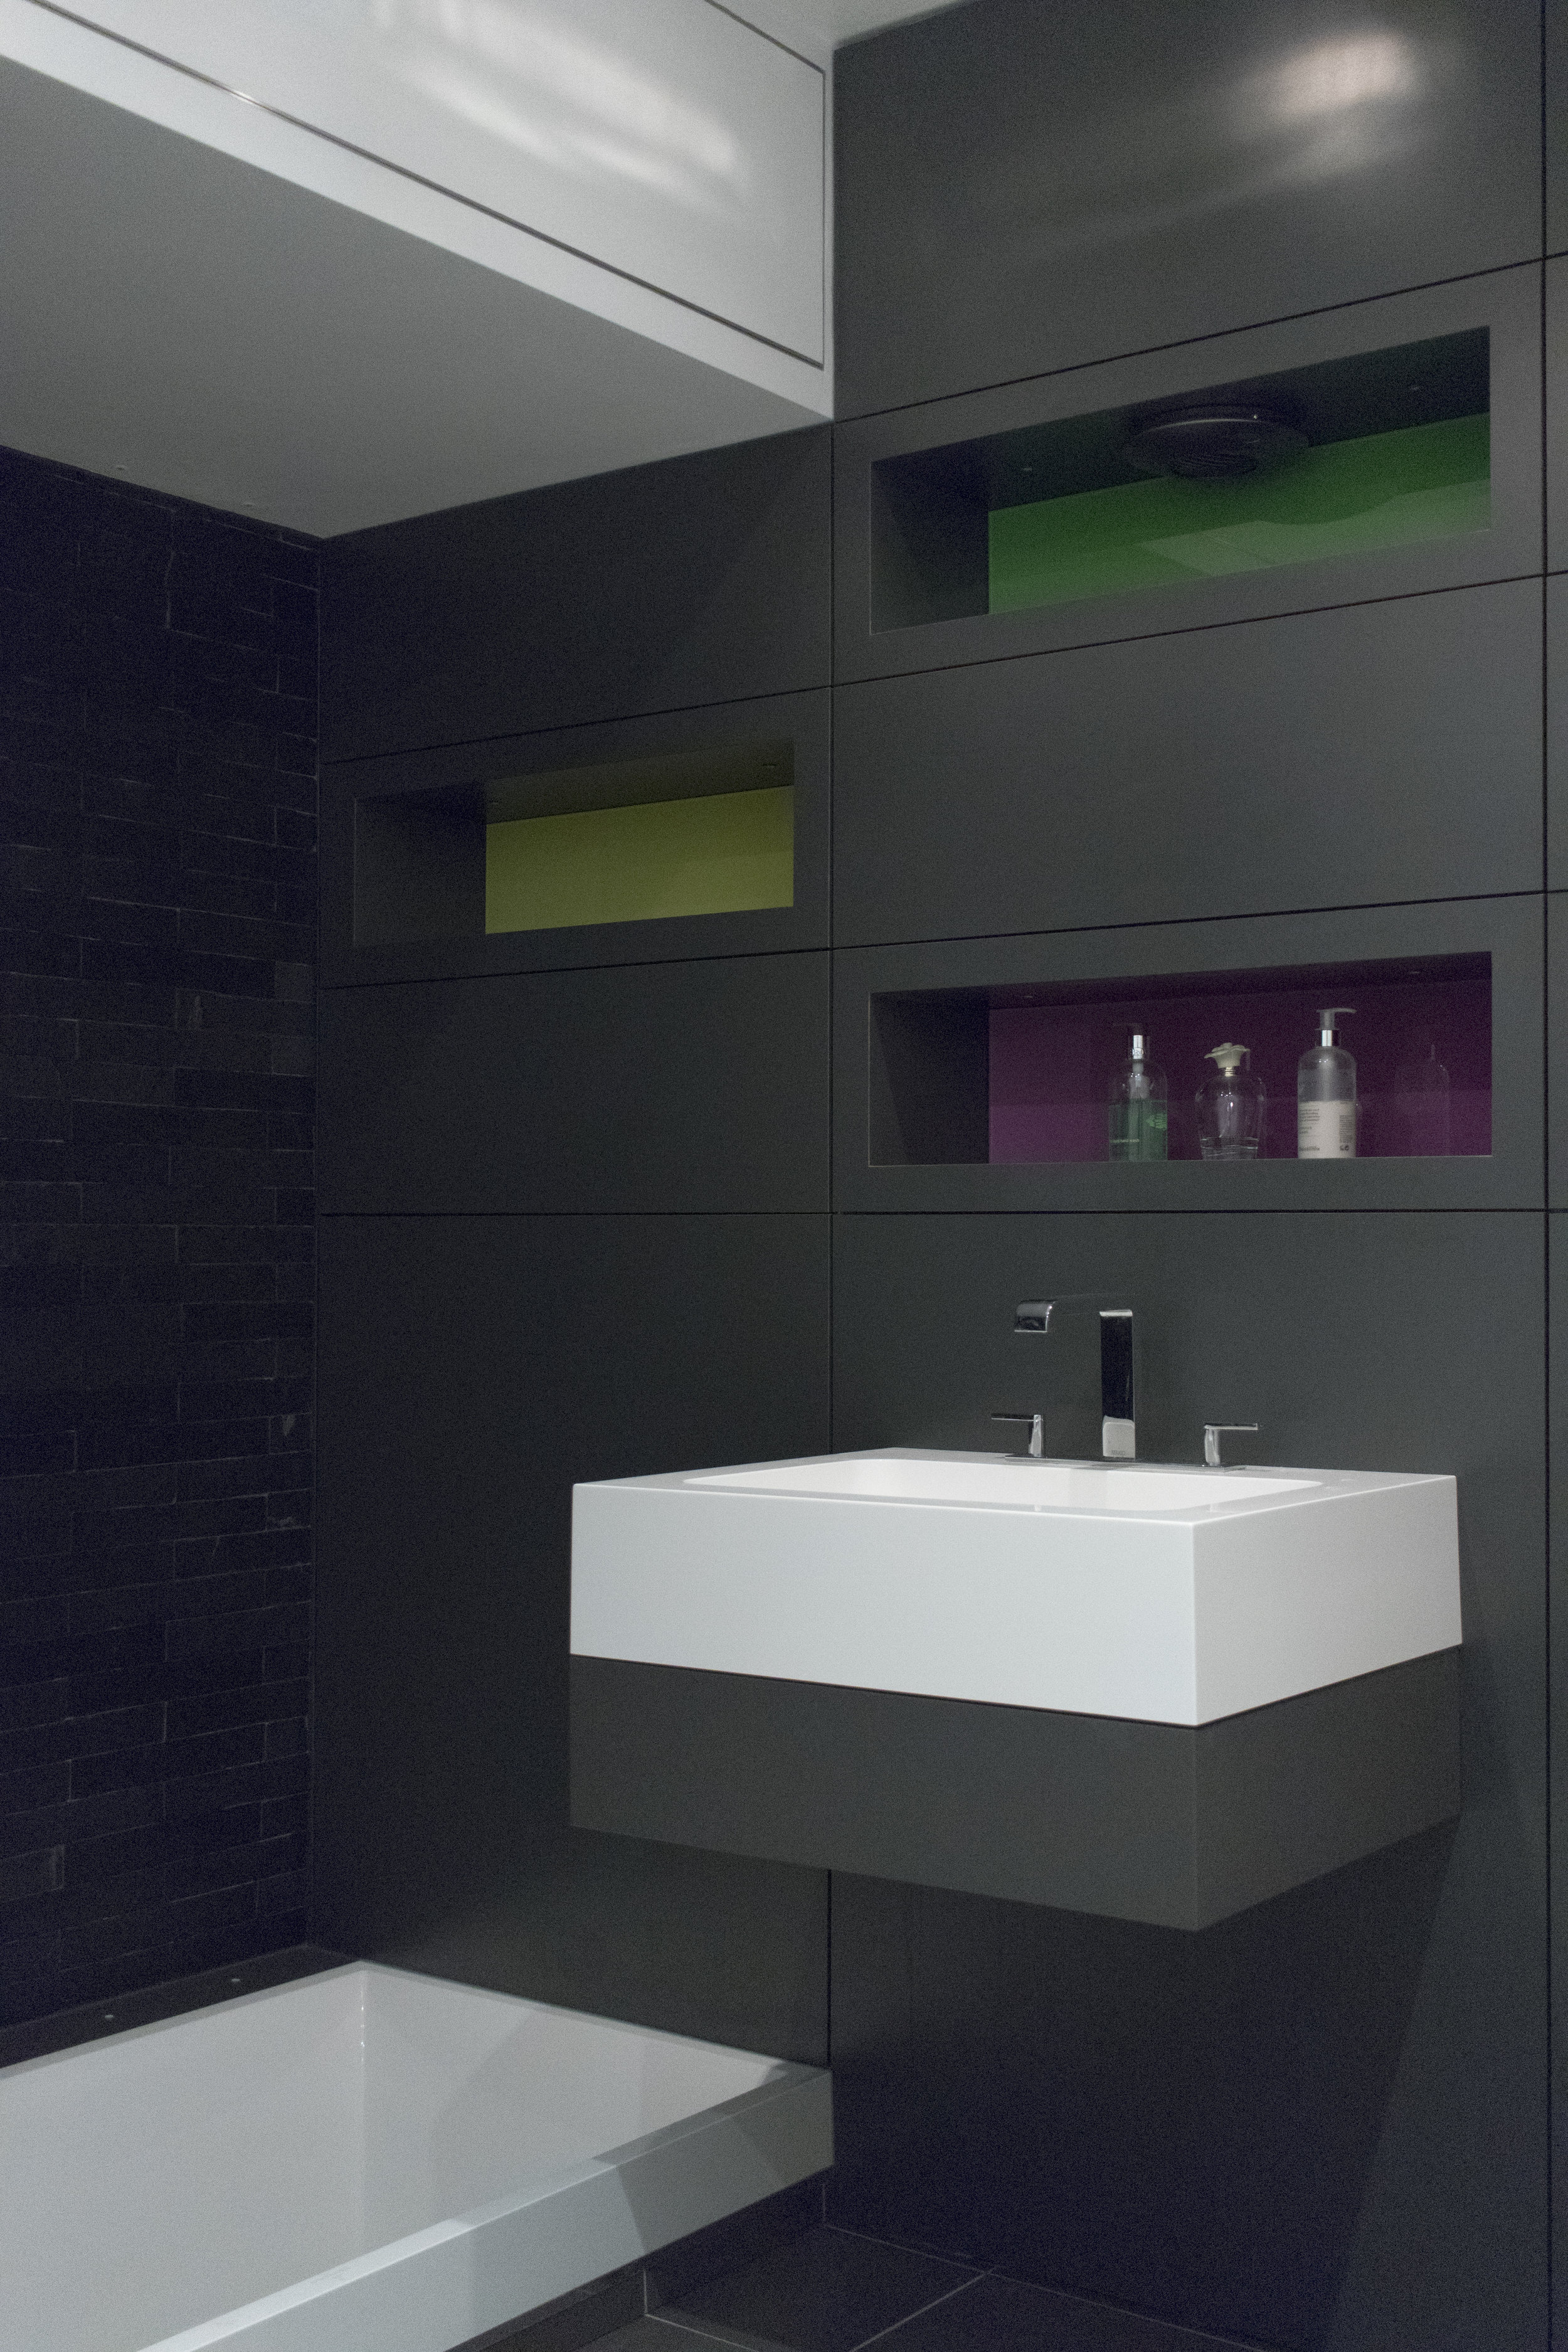 Formica - Durable Formica has been applied to the panels, with coloured glass used to the rear of the shelves.The panels continue to wrap around the floor level bath and utility cupboard.